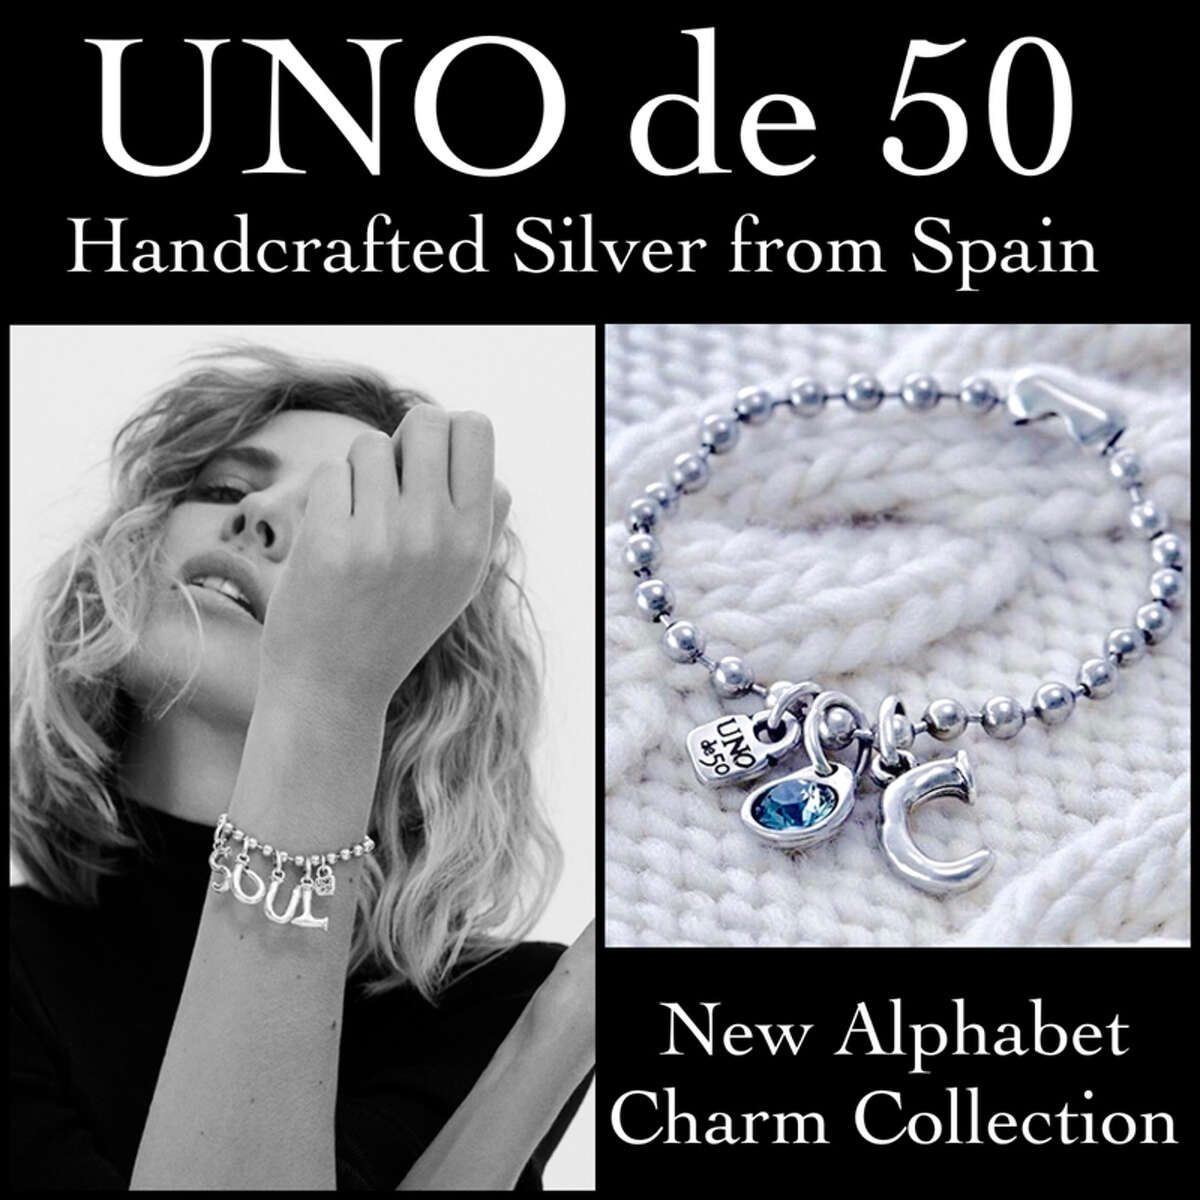 Armed with Charm UNO de 50 is the most sought-after jewelry line in America, and La-Tee-Da Boutique has it. Each piece is handcrafted in silver from Spain. Bracelets are $40, and charms are $50.